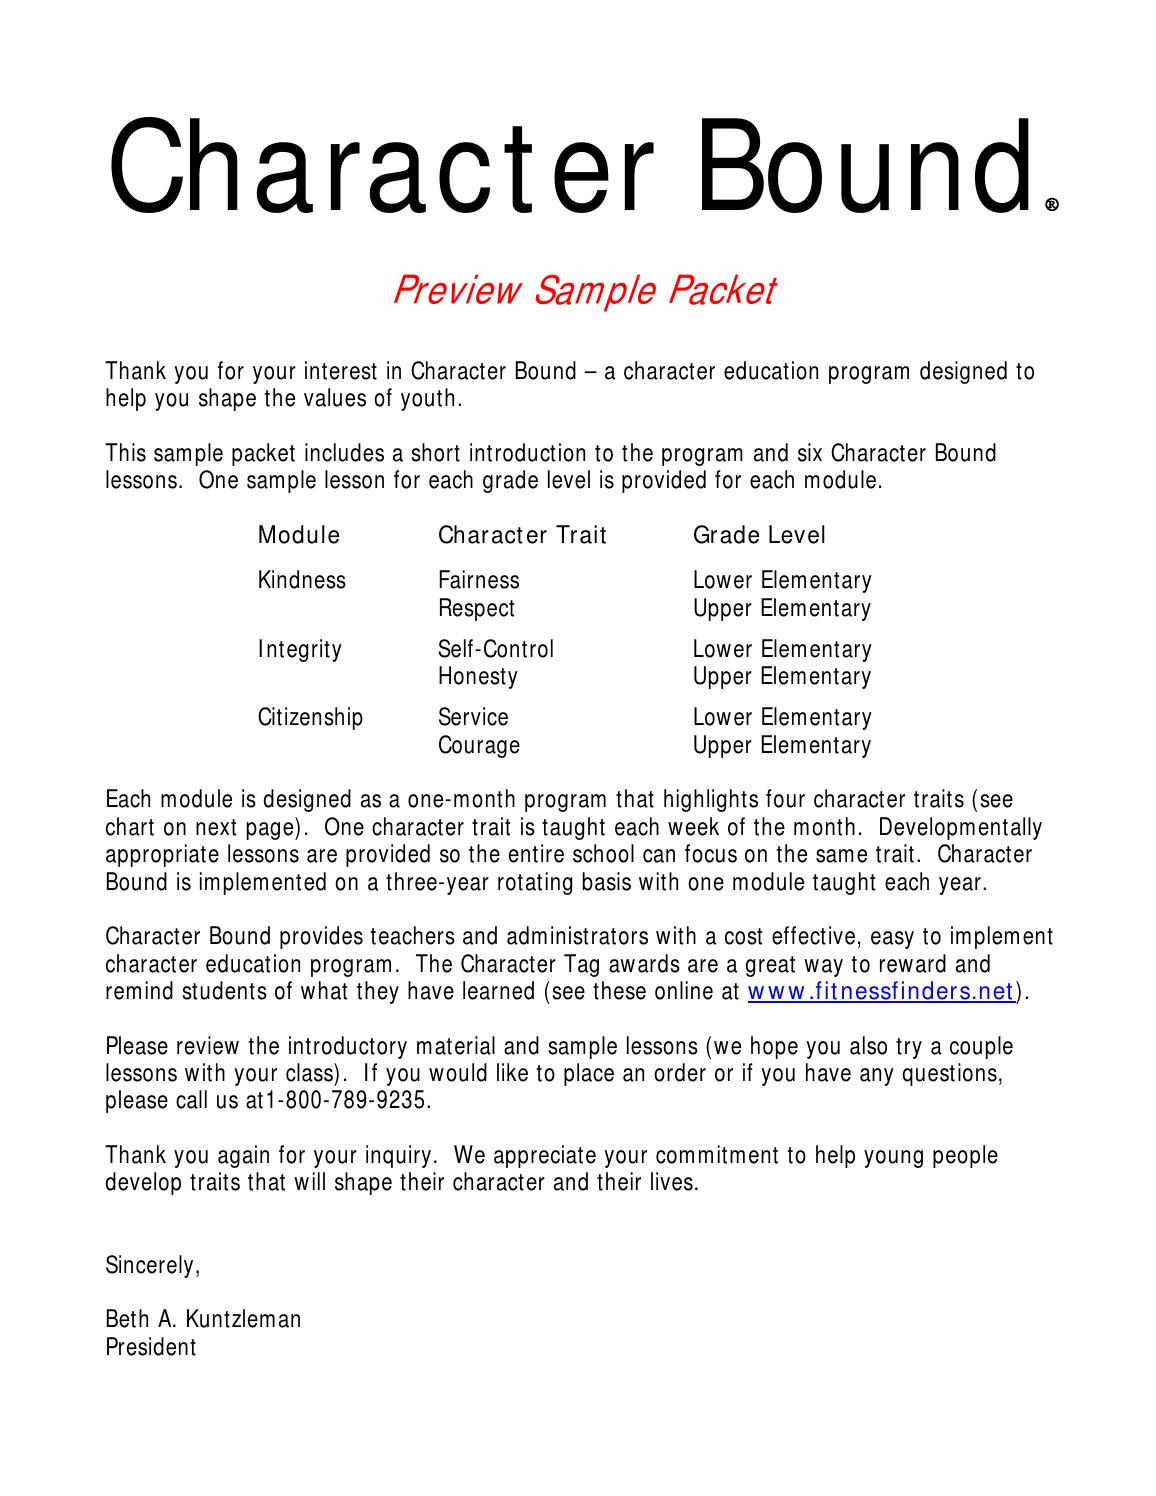 character bound reg  character bound sample packet 3 years ago fitnessfindersinc